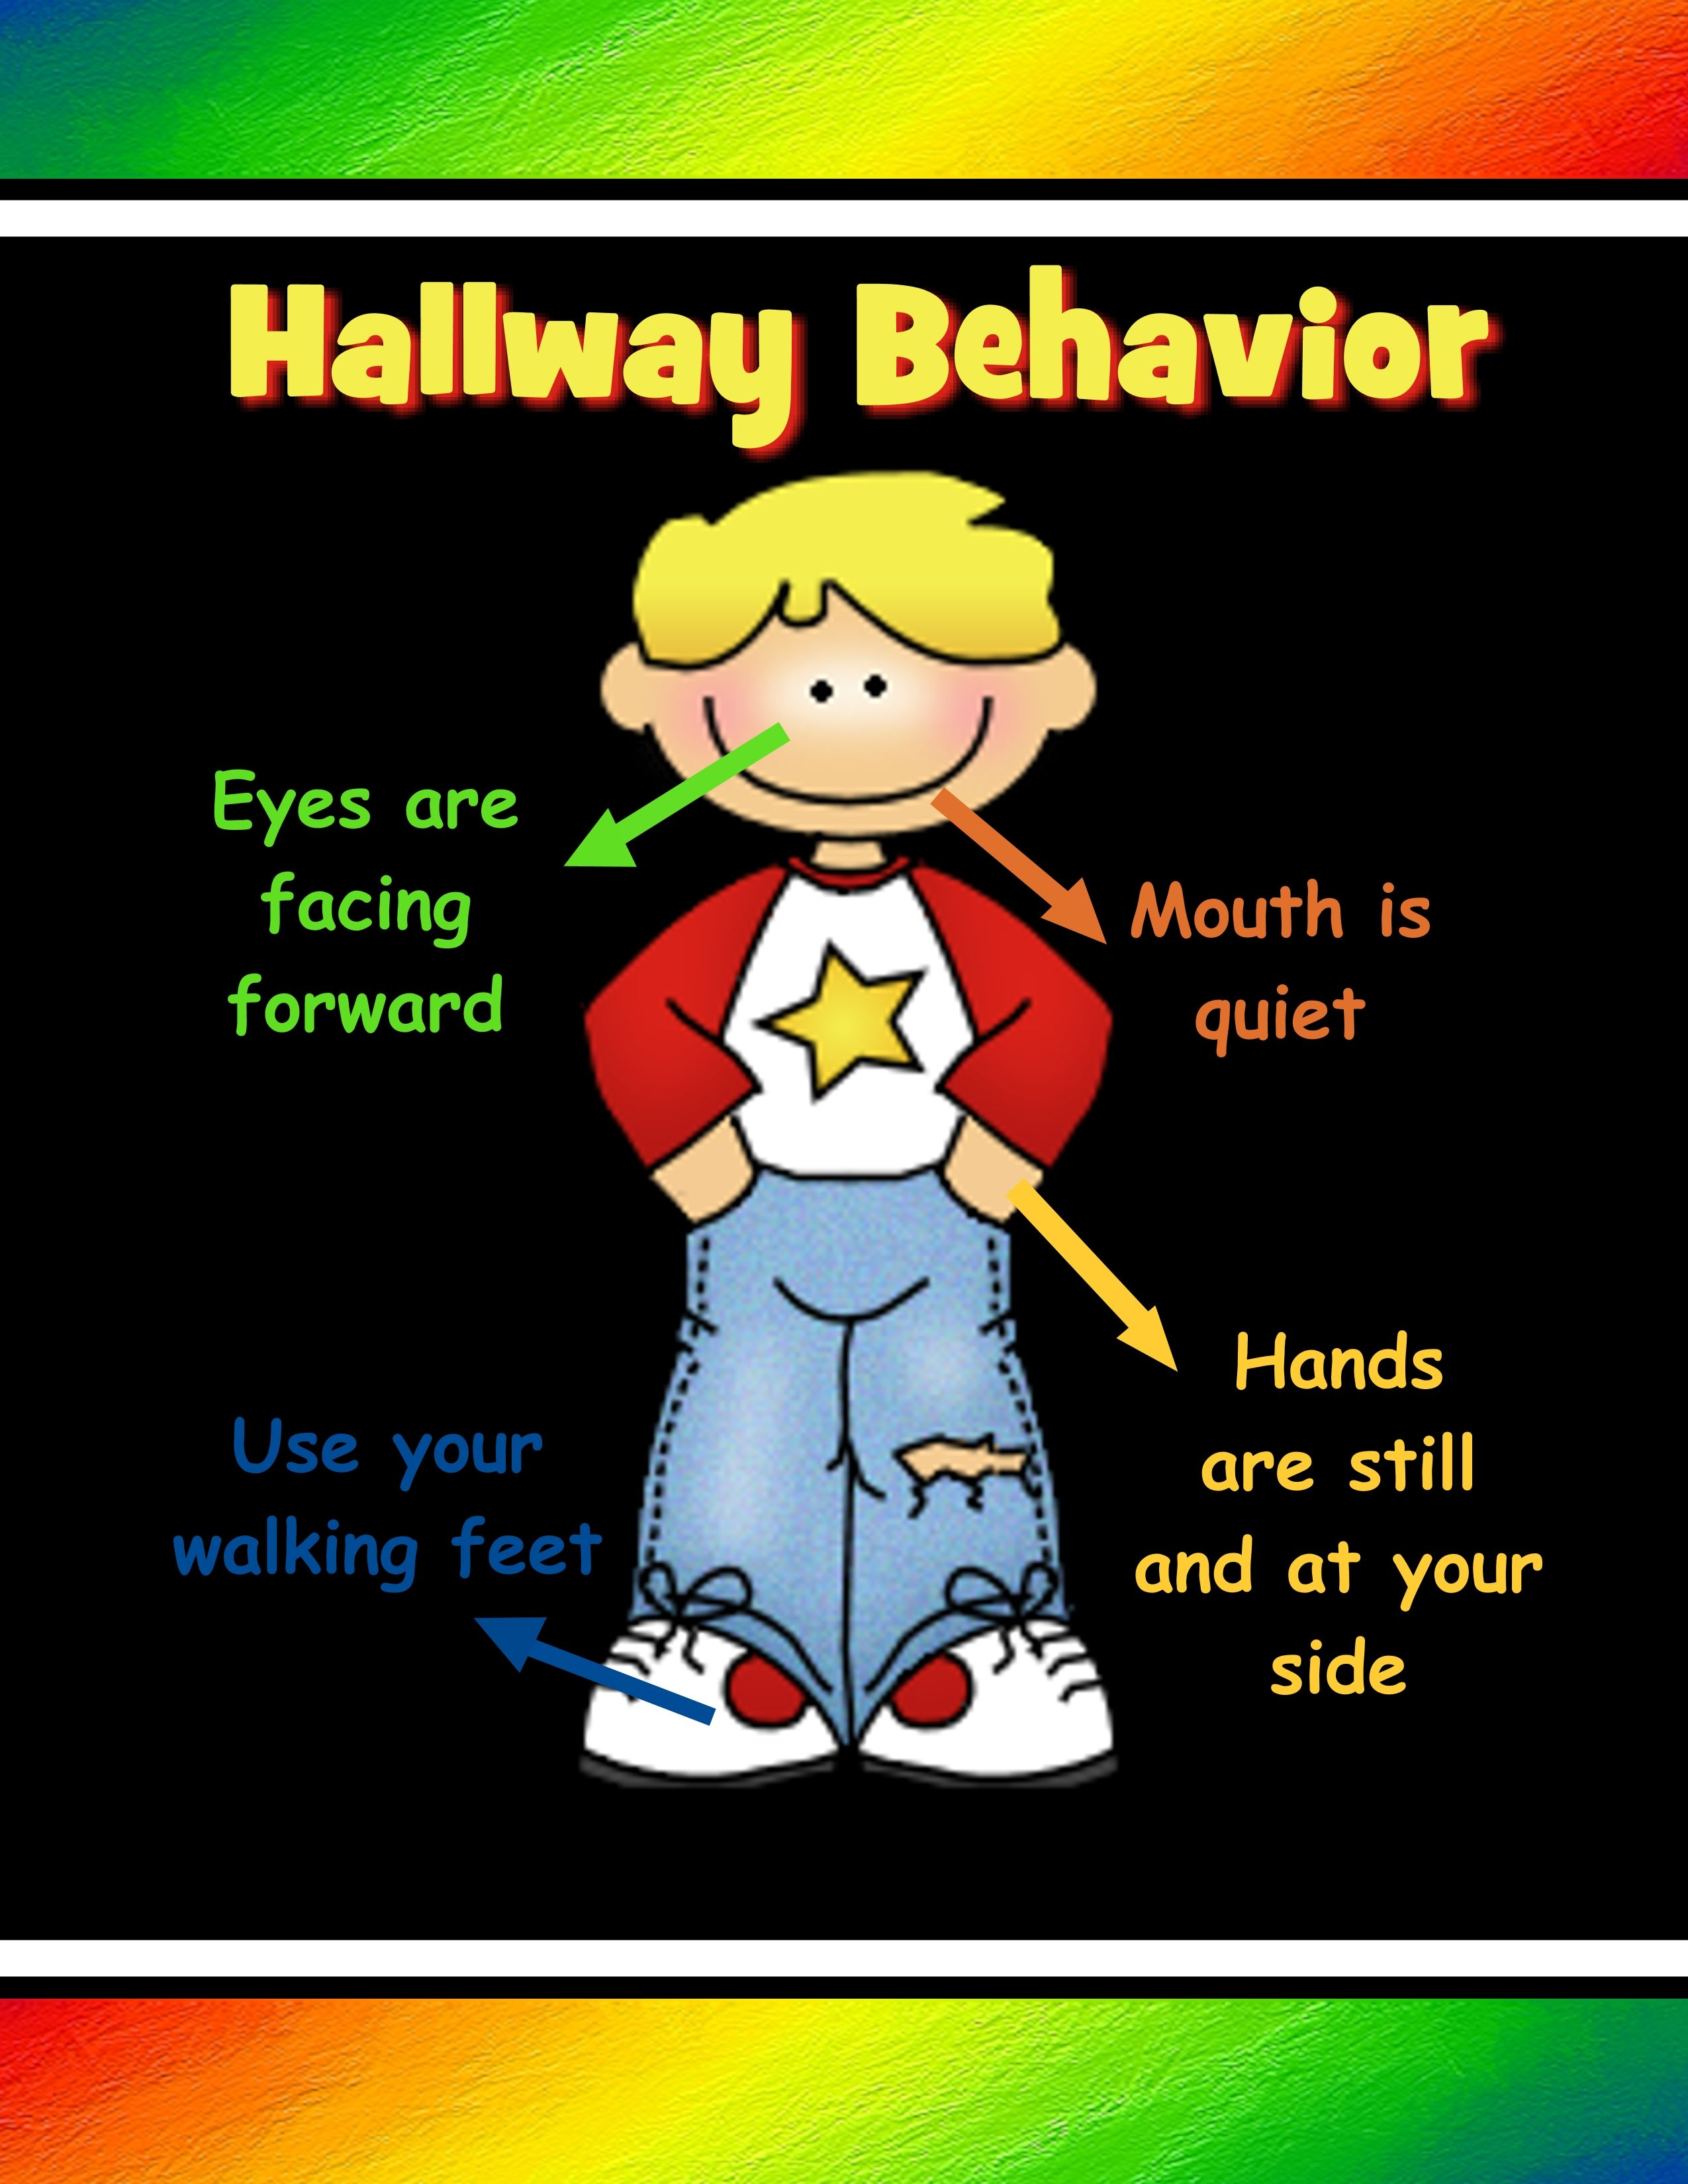 Poster For Hallway Behavior From Icreate2educate